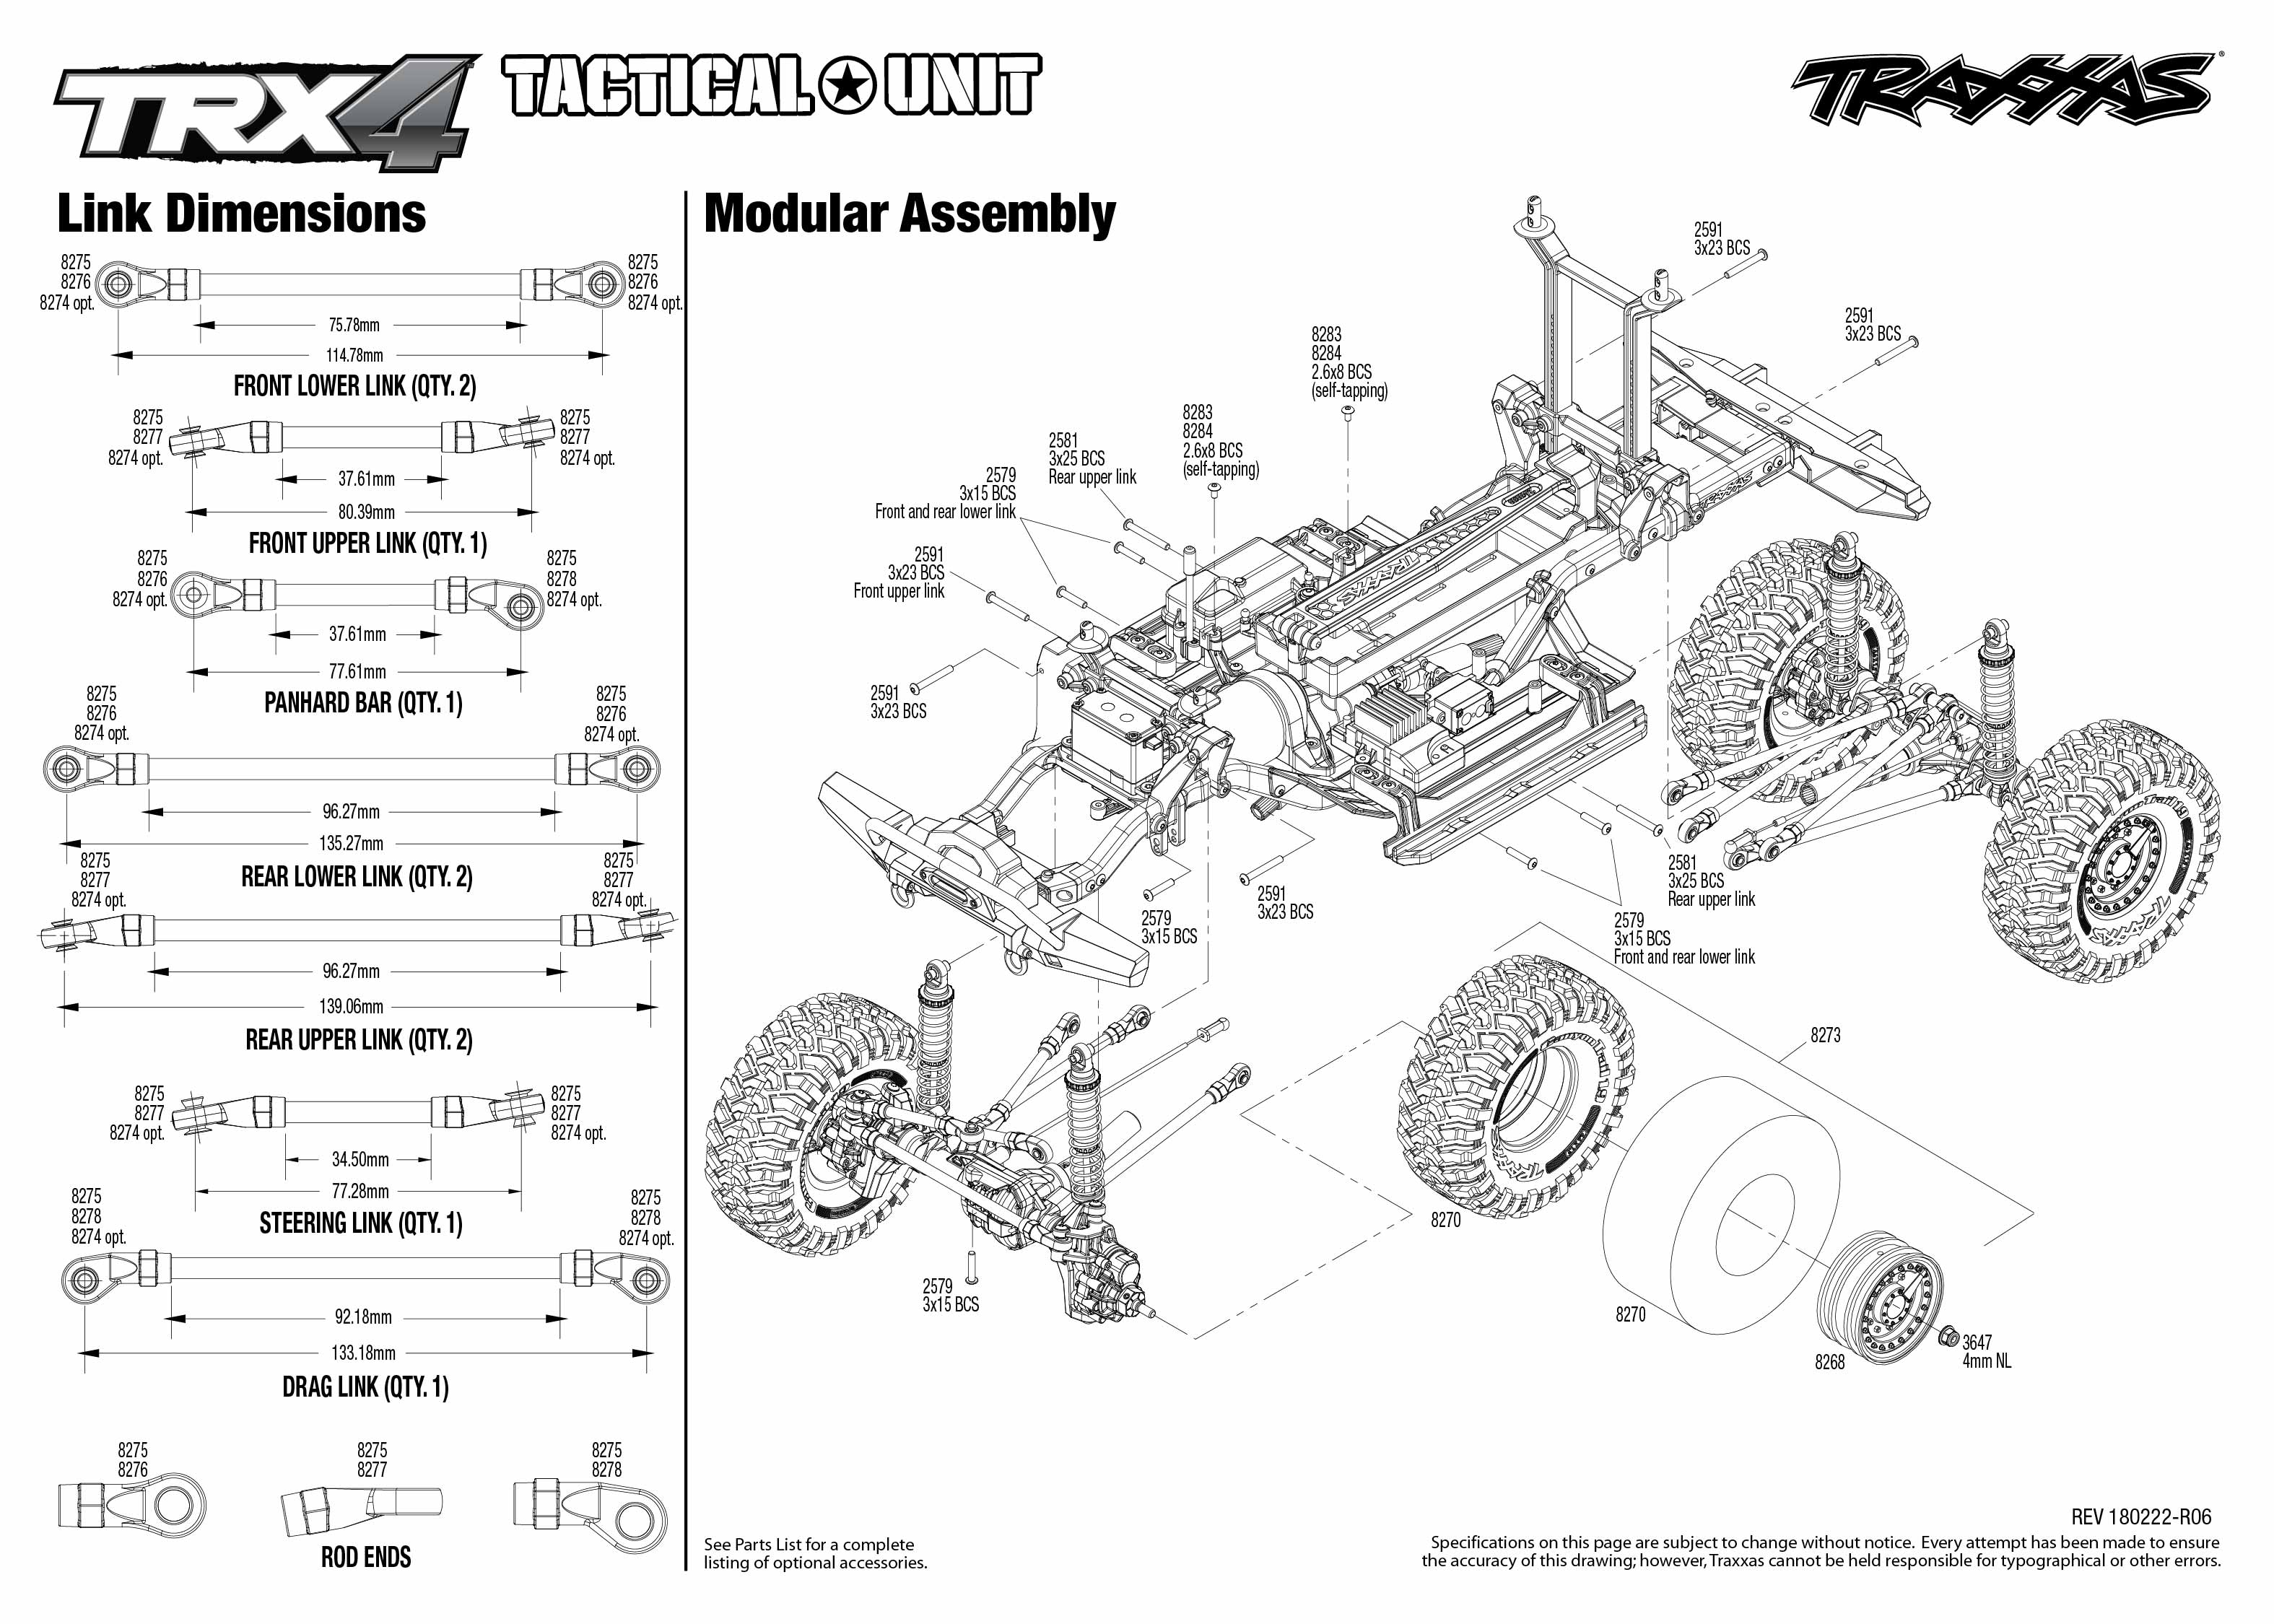 TRX-4 Tactical Unit (82066-4) Modular Assembly Exploded